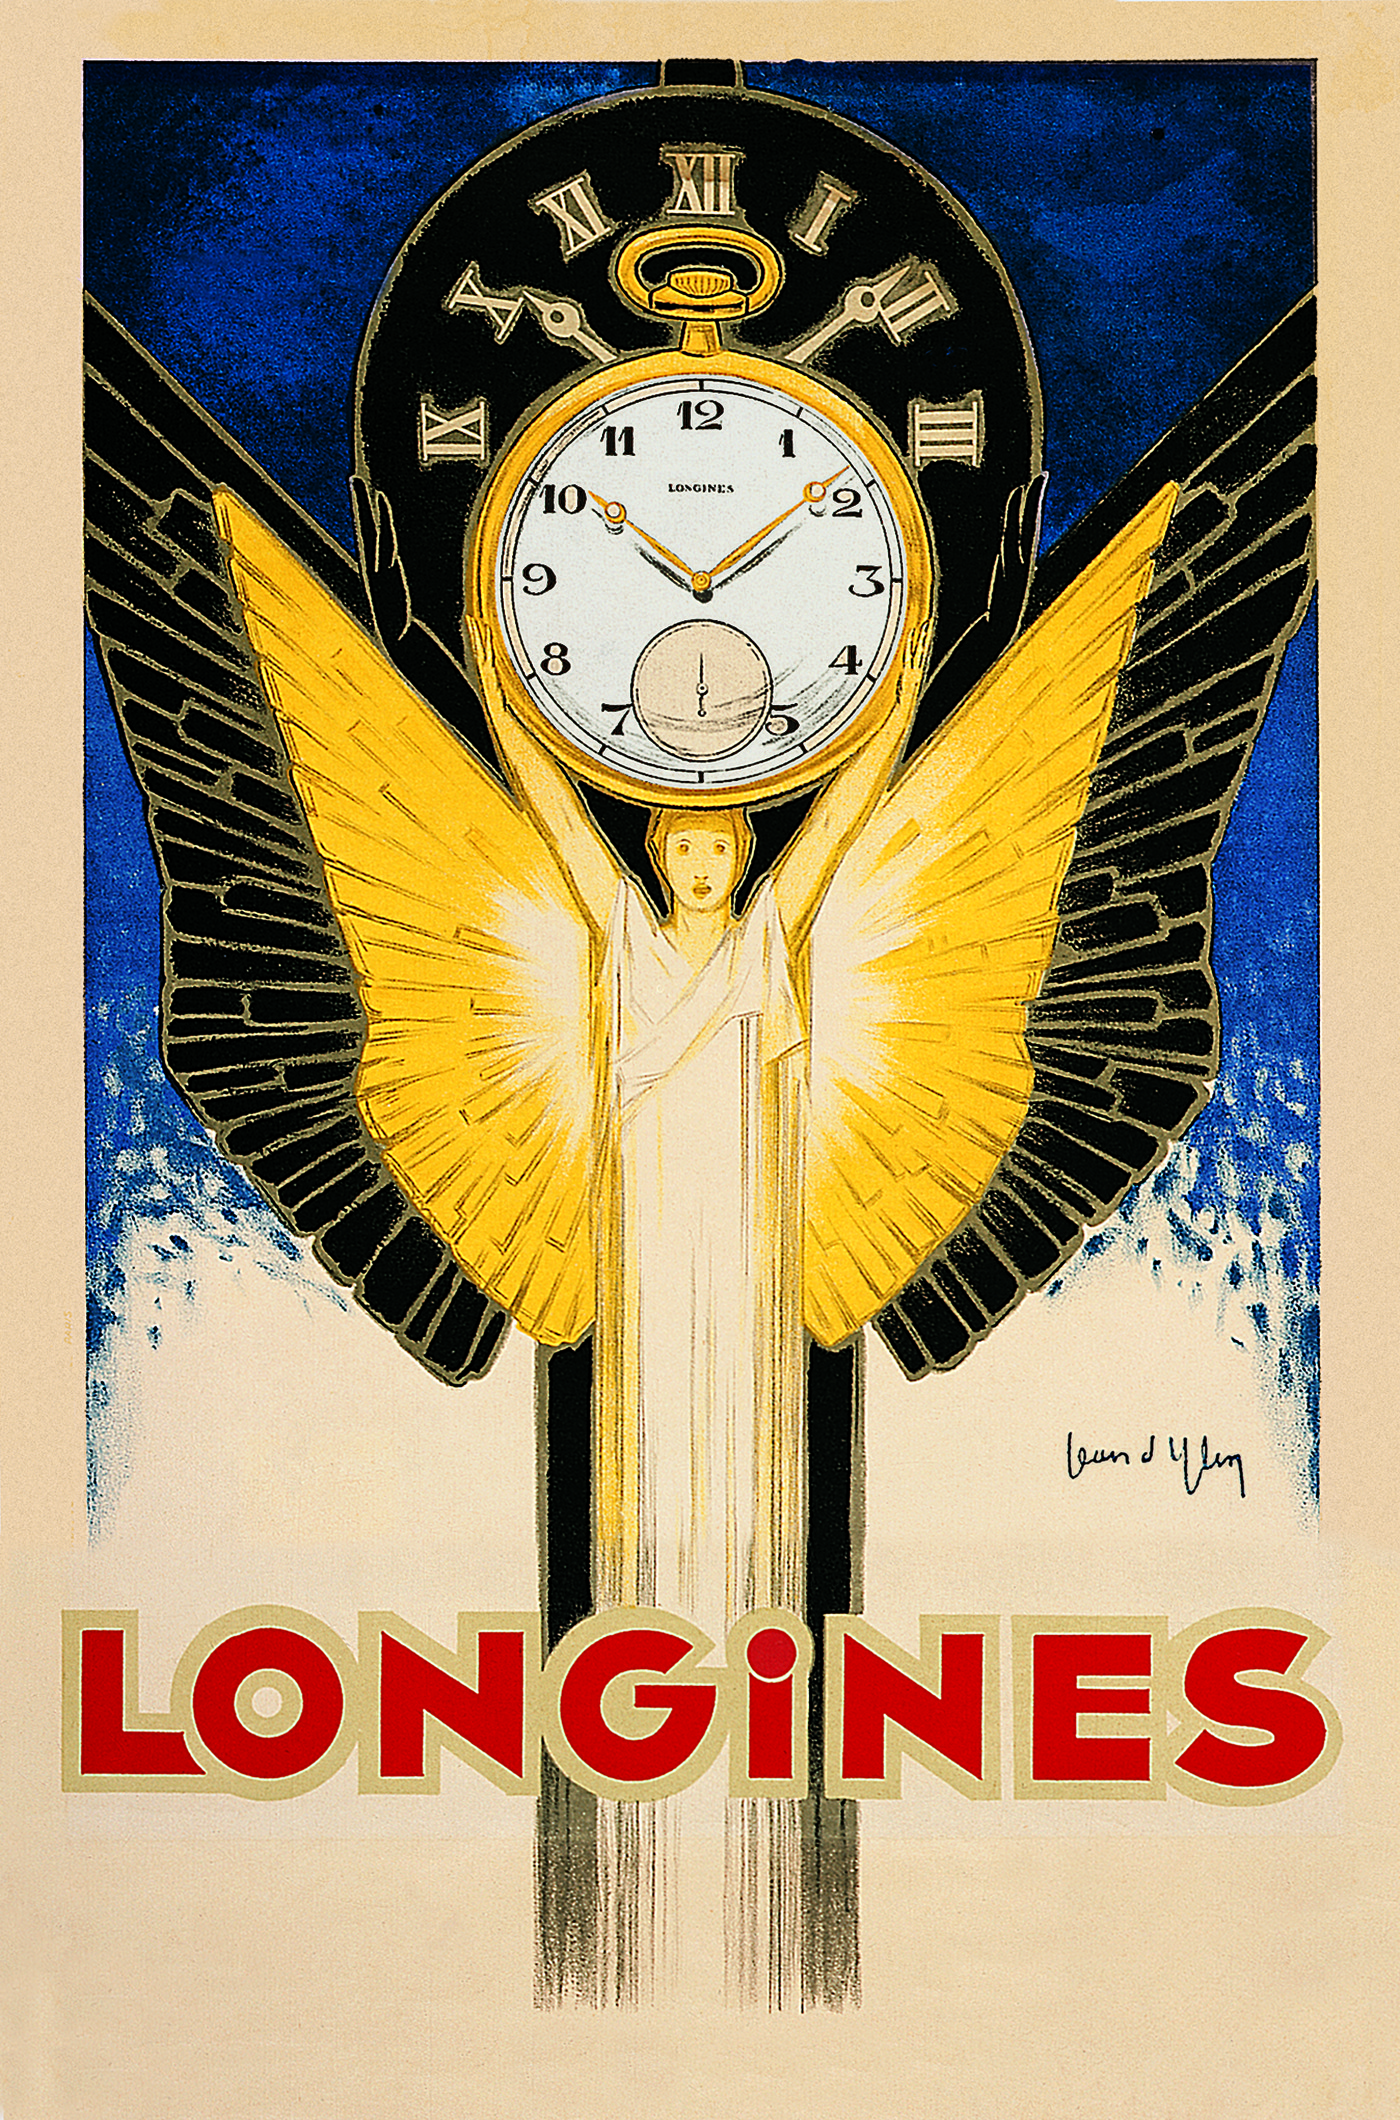 Longines Corporate Event: Serving precision and elegance in time for 175 years 36